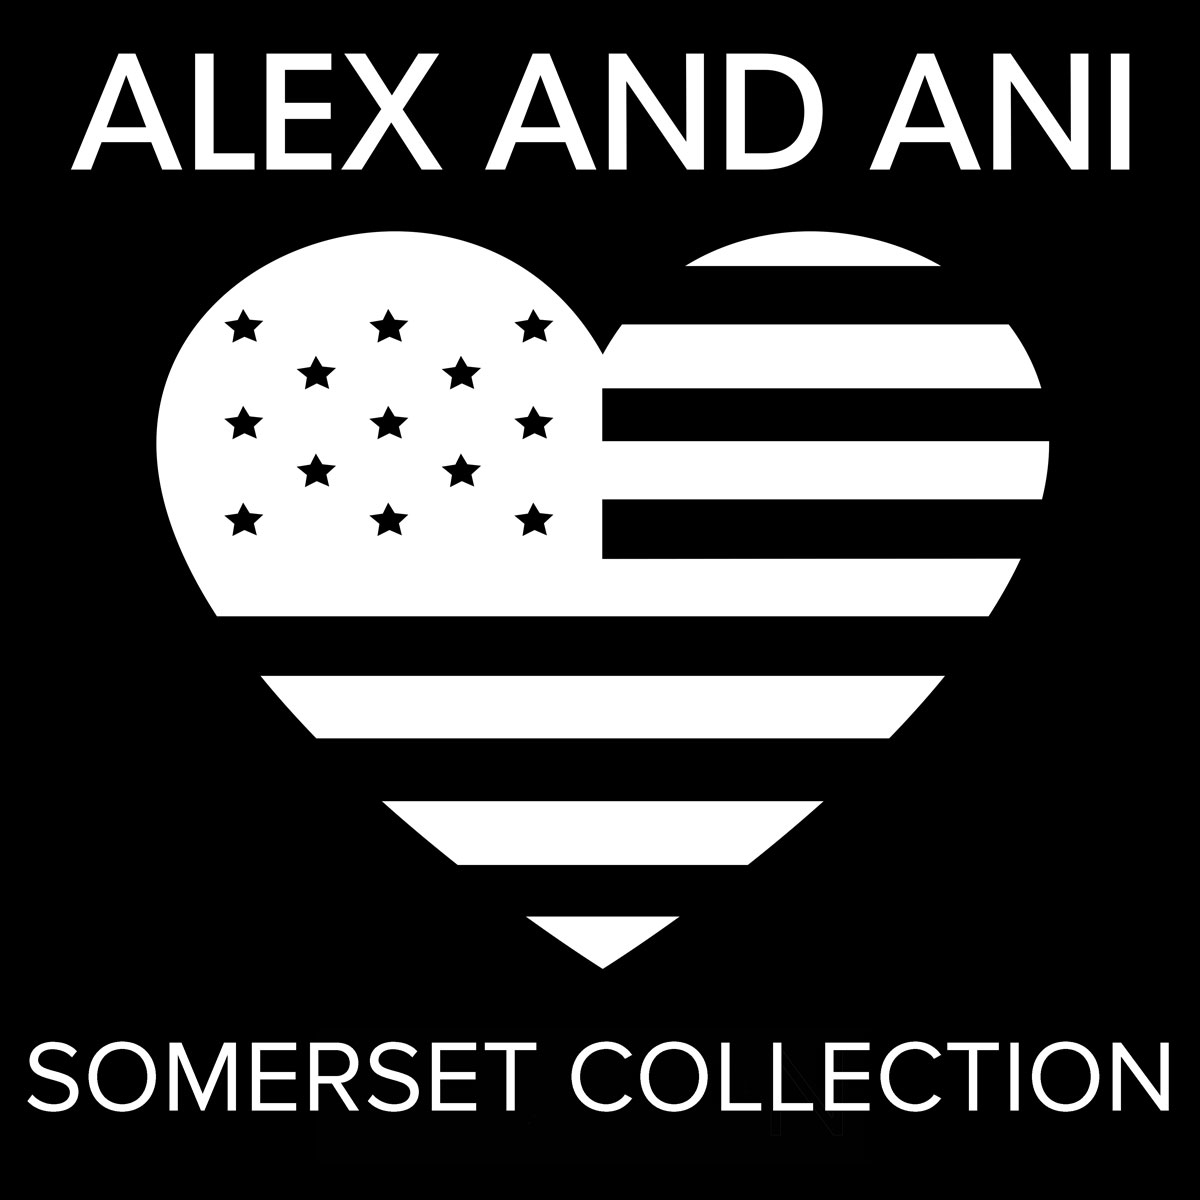 Alex And Ani Troy Michigan Mi Localdatabase Com